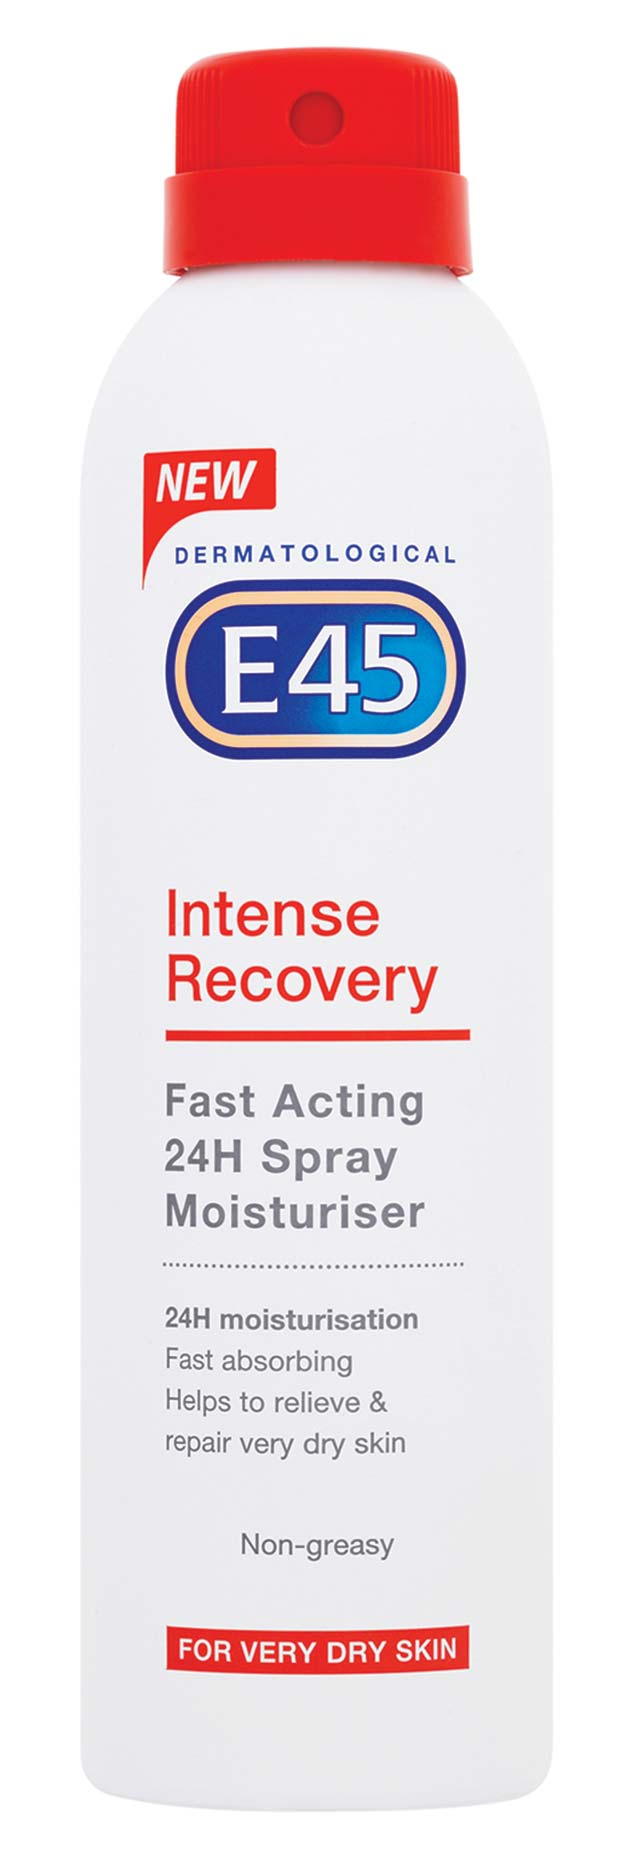 E45-Intense-Recovery-Spray[3]